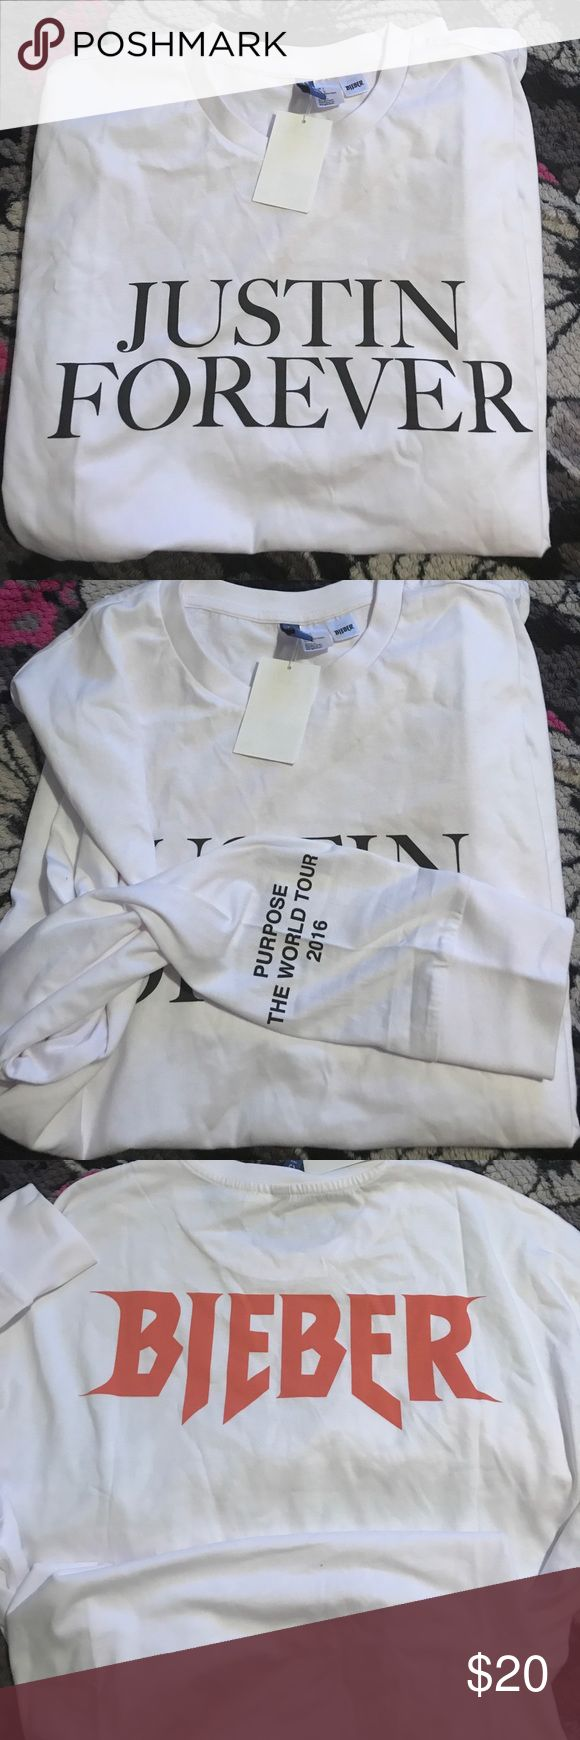 Long sleeve Justin Bieber H&M shirt Brand New! Never Been Worn! With Original Tags! H&M Tops Tees - Long Sleeve